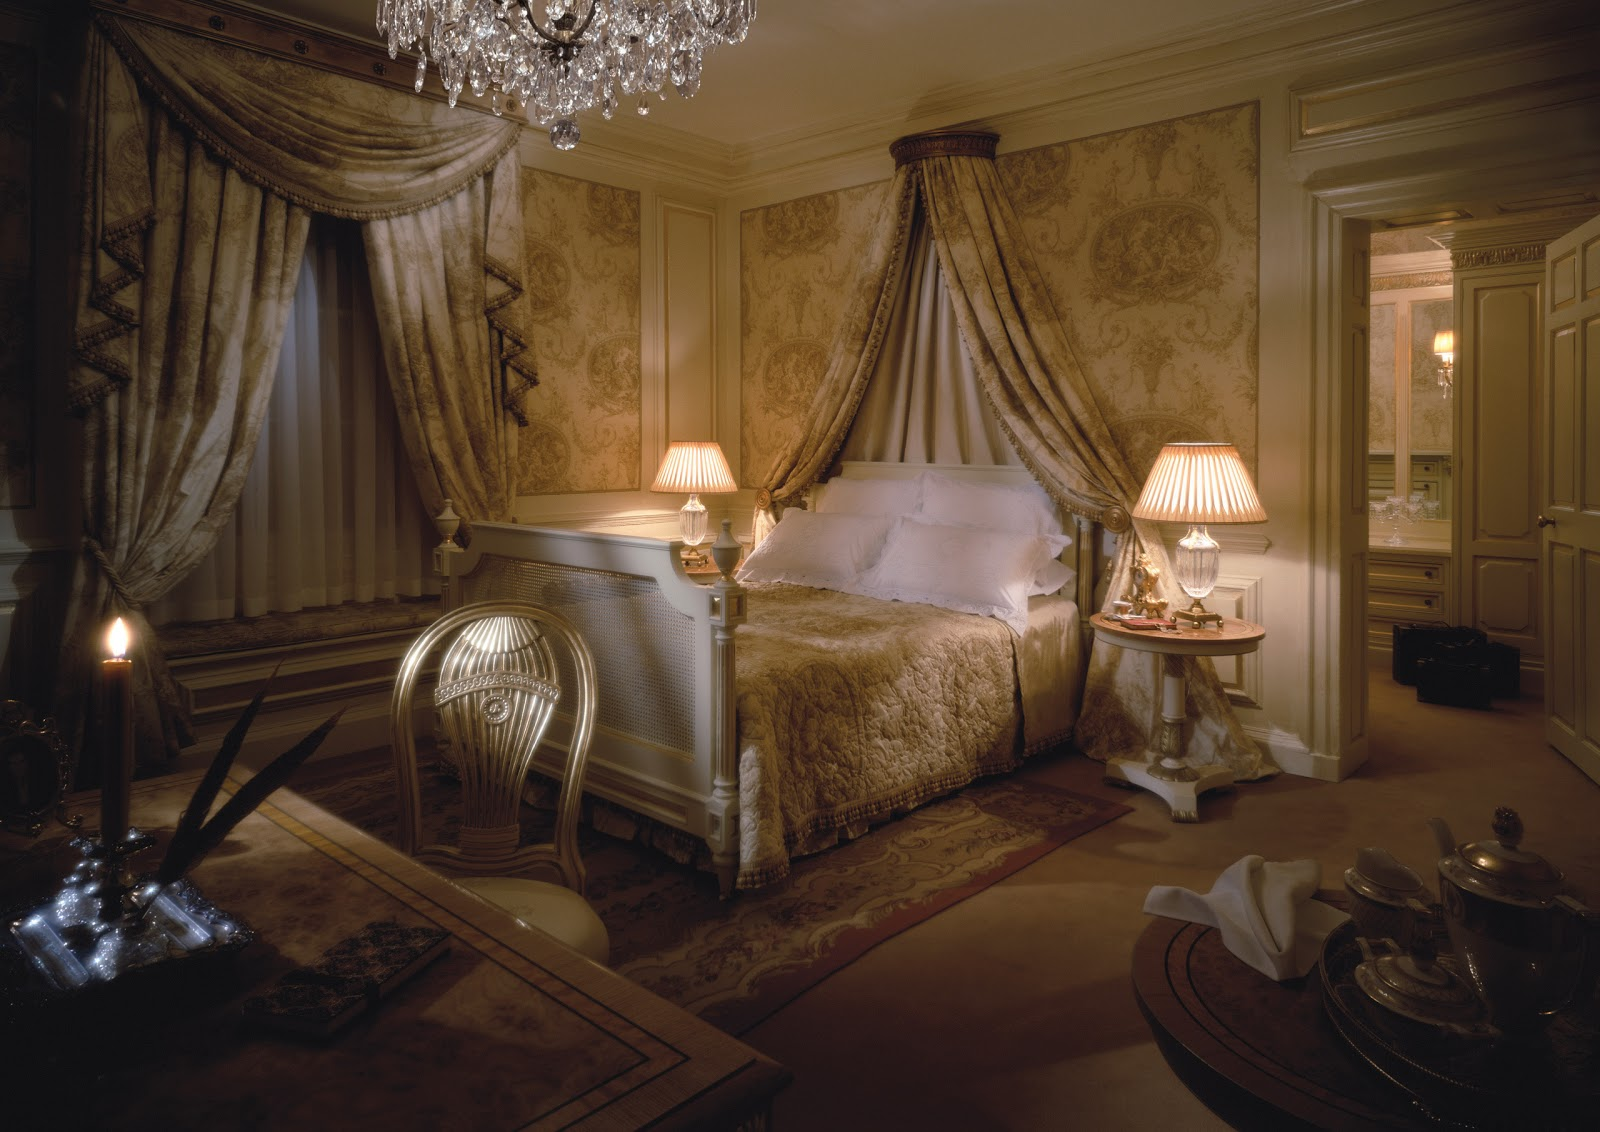 TRADITION INTERIORS OF NOTTINGHAM: Clive Luxury Bedroom ... on victorian bedroom colors, victorian bathroom, victorian master bedroom, victorian bedroom diy ideas, elegant bedroom ideas, victorian bedroom ideas for teens, victorian french bedroom, victorian bedroom artwork, victorian bedroom furniture, victorian reproduction wallpaper, vintage bedroom ideas, victorian castle bedroom, victorian bedroom lamps, victorian beds, victorian bedroom curtains, victorian wall decor ideas, victorian bedroom wallpaper, victorian bedroom themes, victorian bedroom paint ideas, victorian bedding,